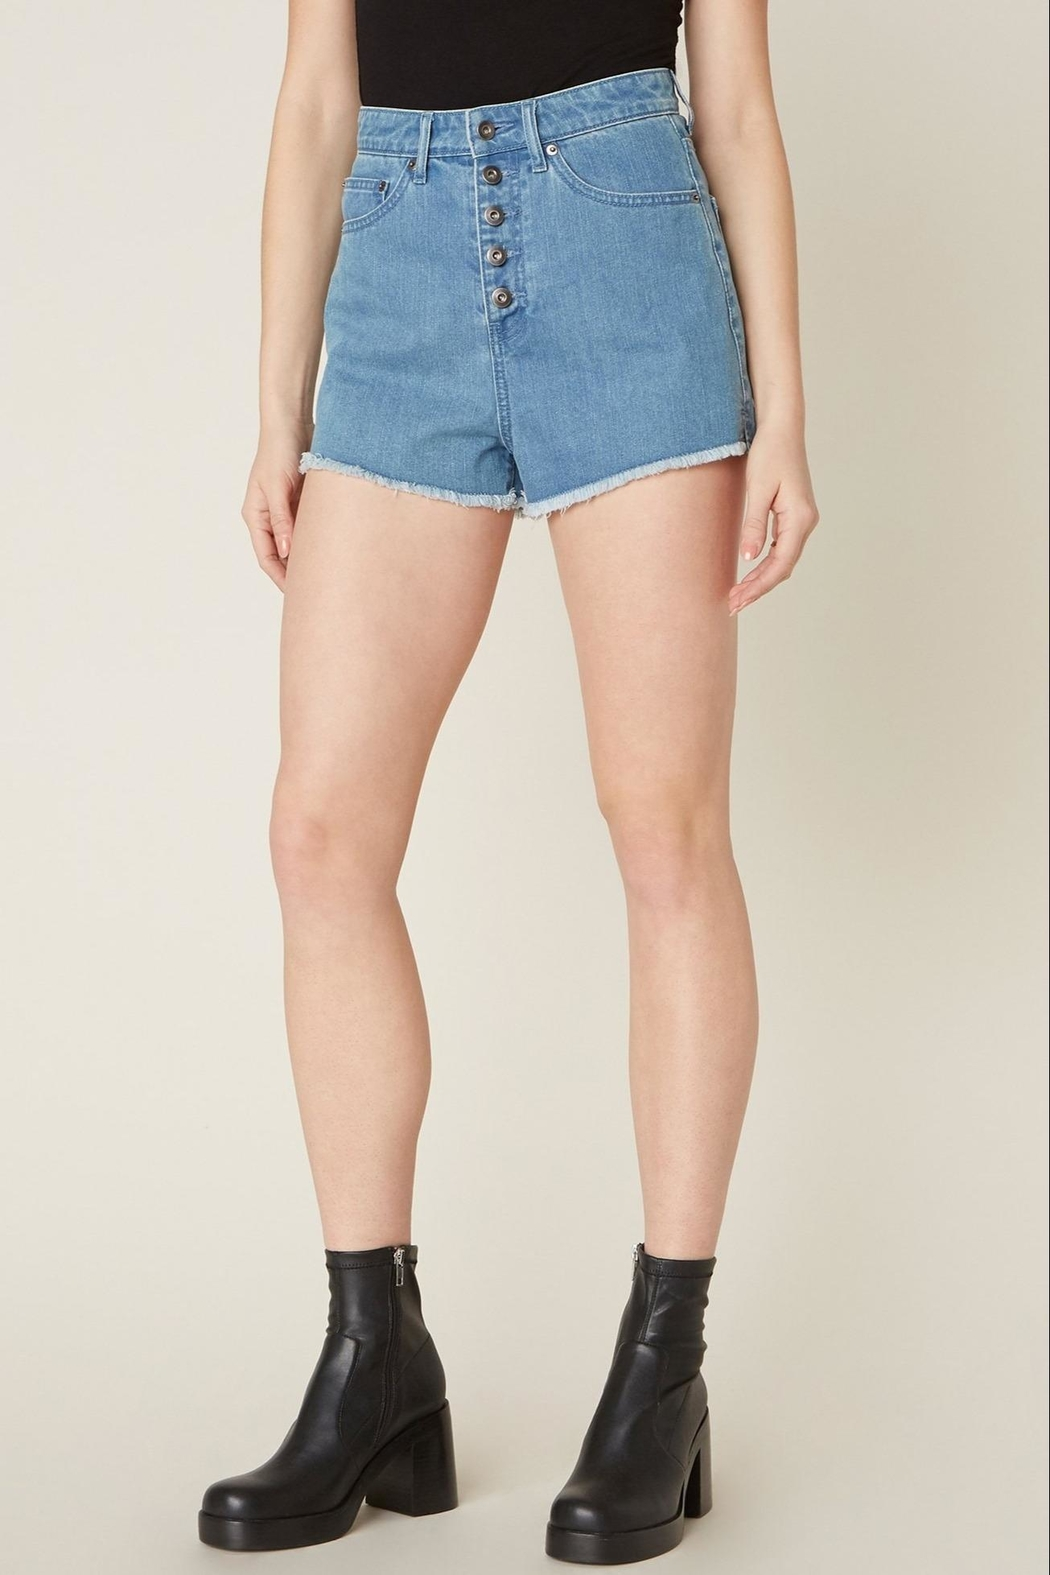 Jack by BB Dakota Down-To-Business Denim Short - Front Cropped Image